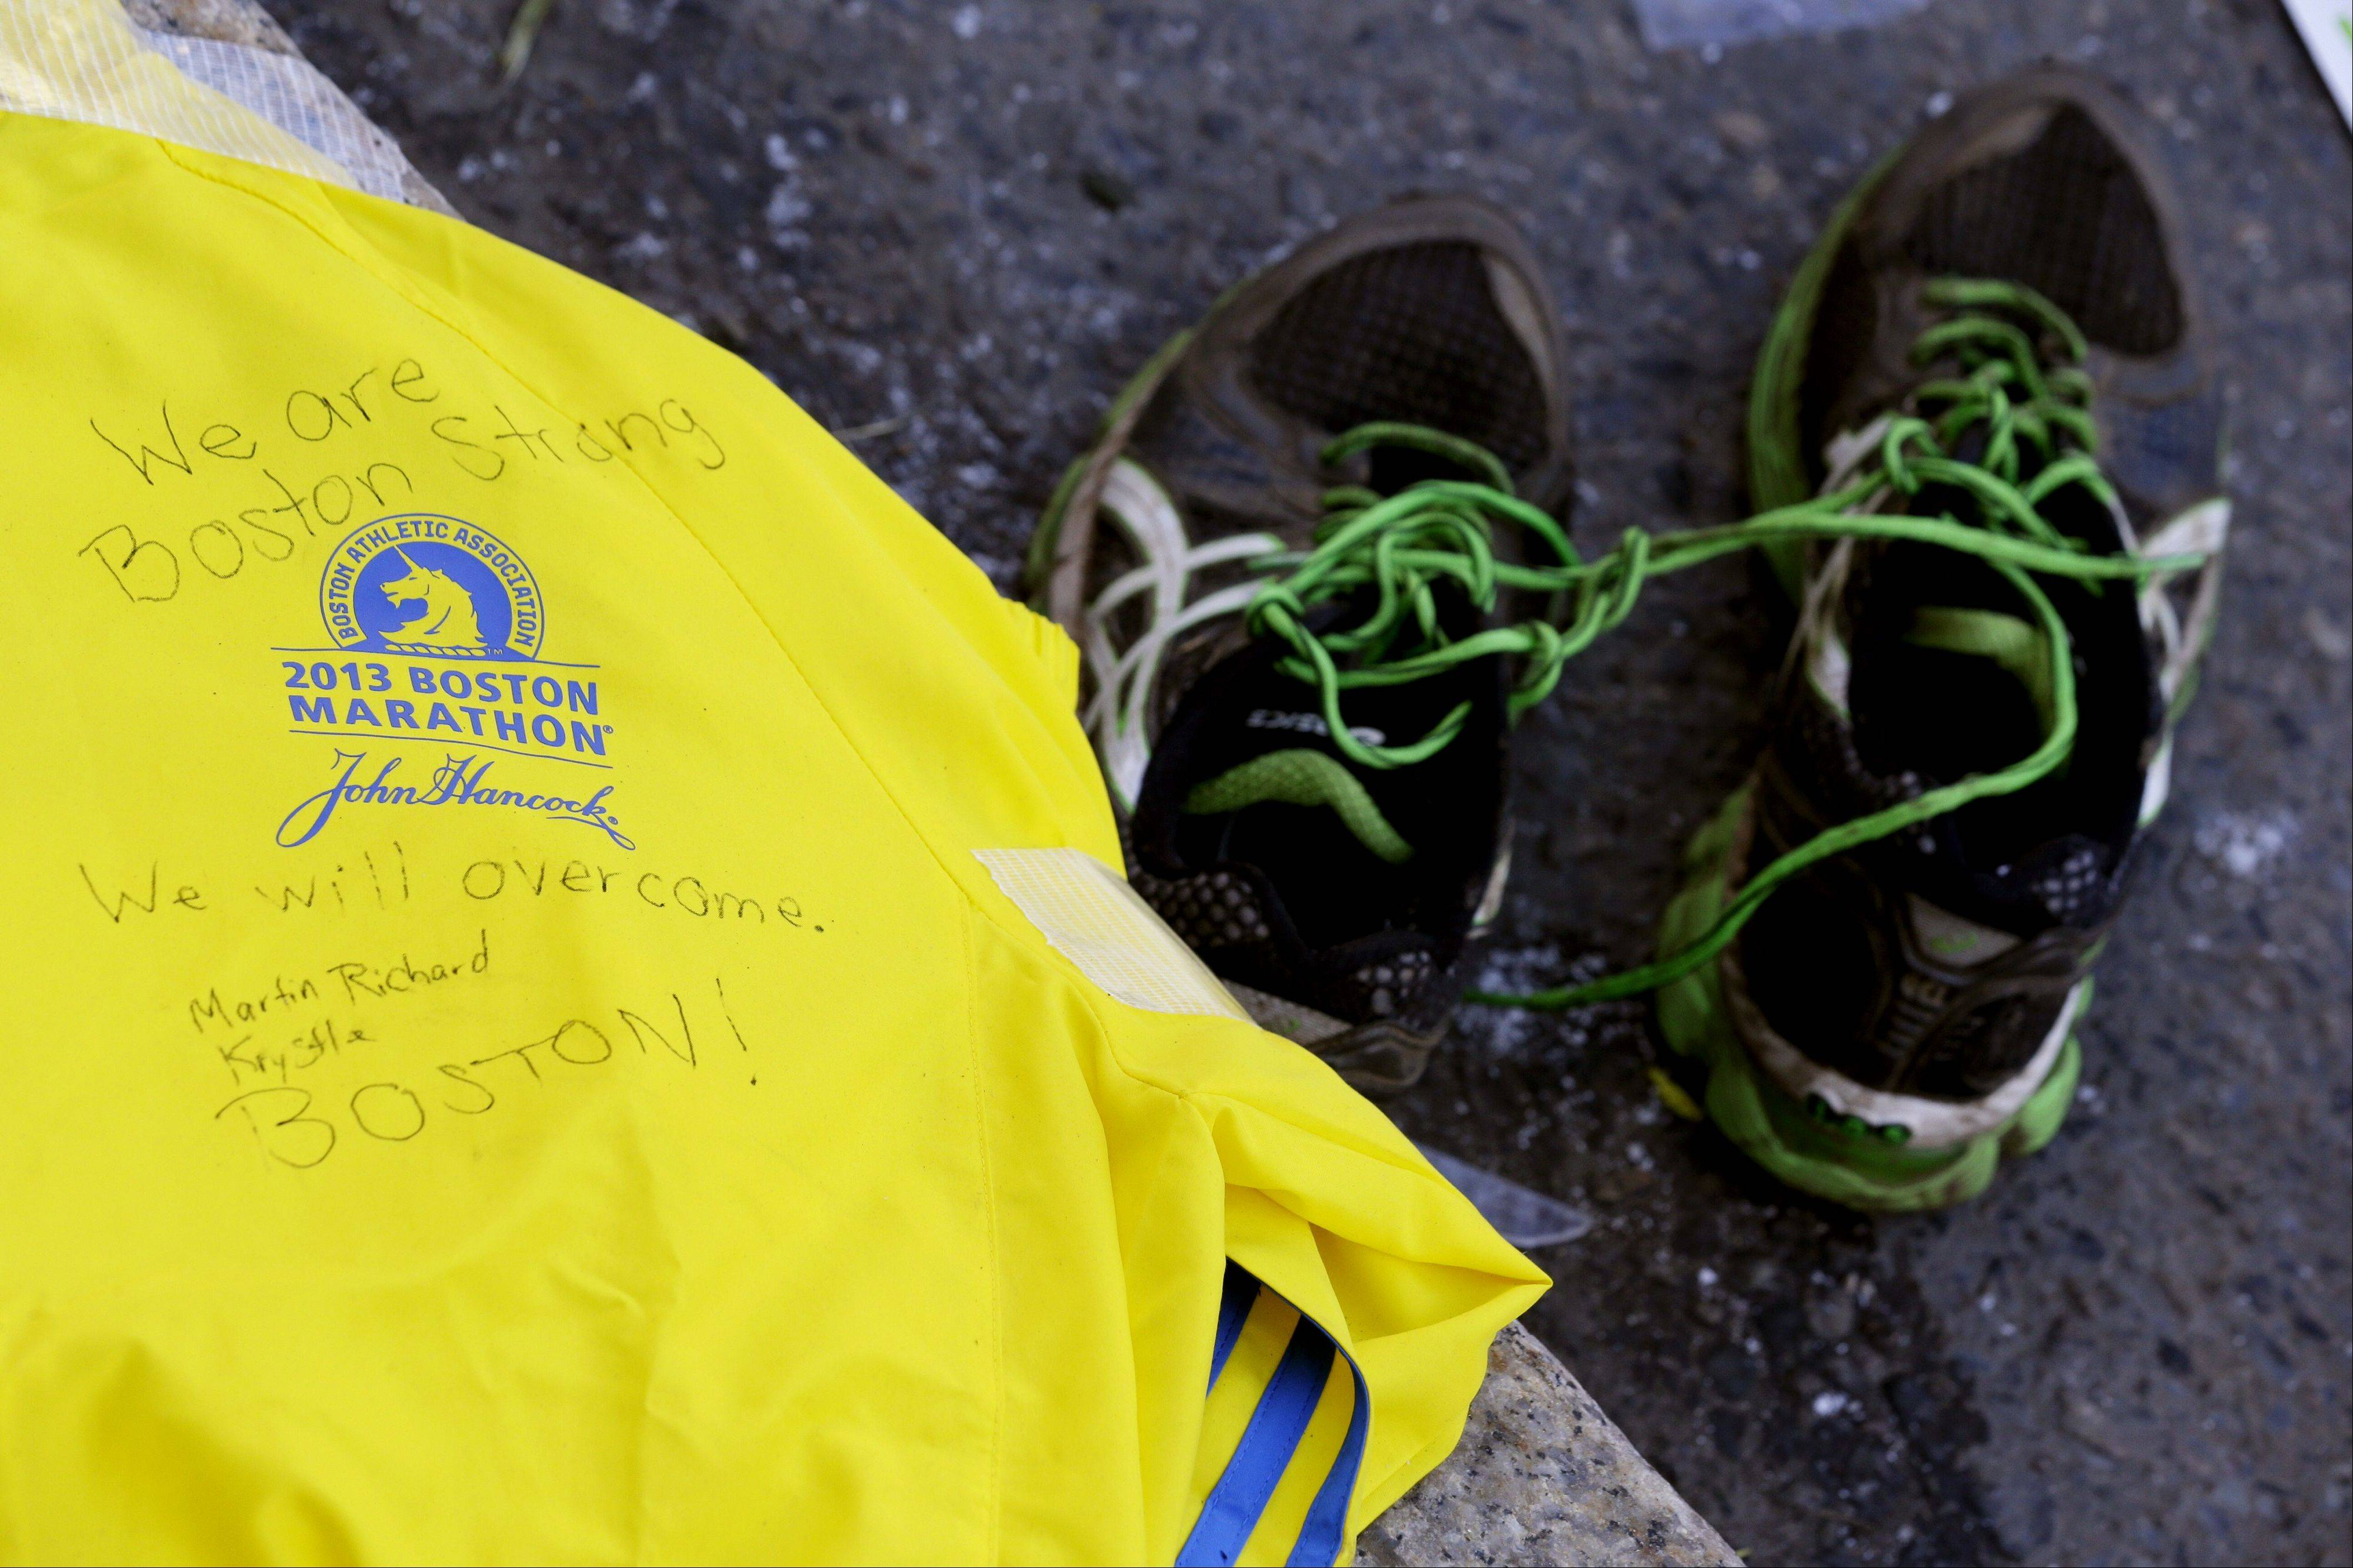 A message is written on a volunteer's jacket near running shoes at a makeshift memorial on Boylston Street near the blast site of the Boston Marathon explosions, Thursday, April 18, 2013, in Boston. The city continues to cope following Monday's explosions near the finish line of the marathon.